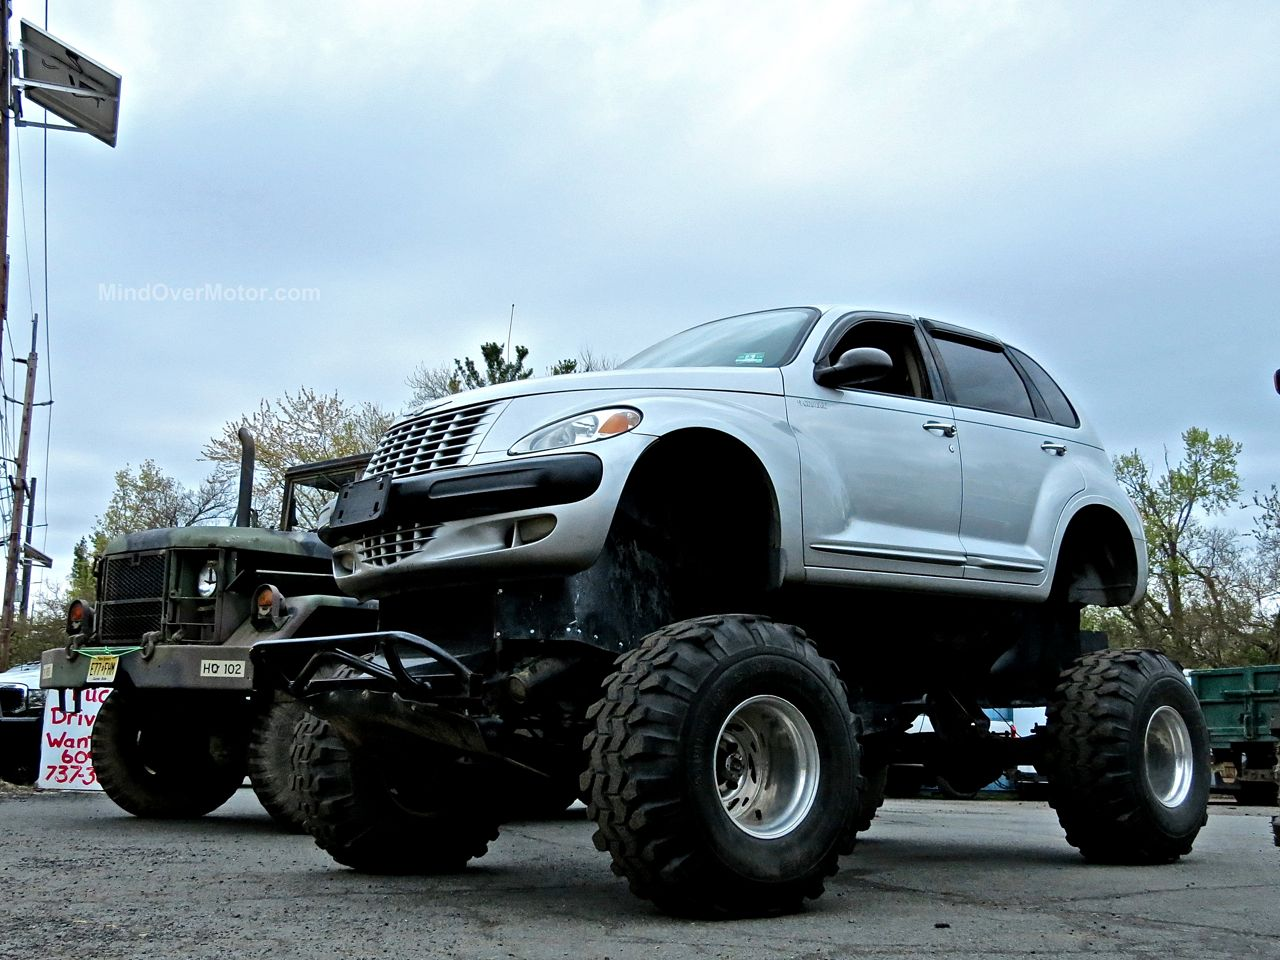 Chrysler PT Cruiser Monster Truck